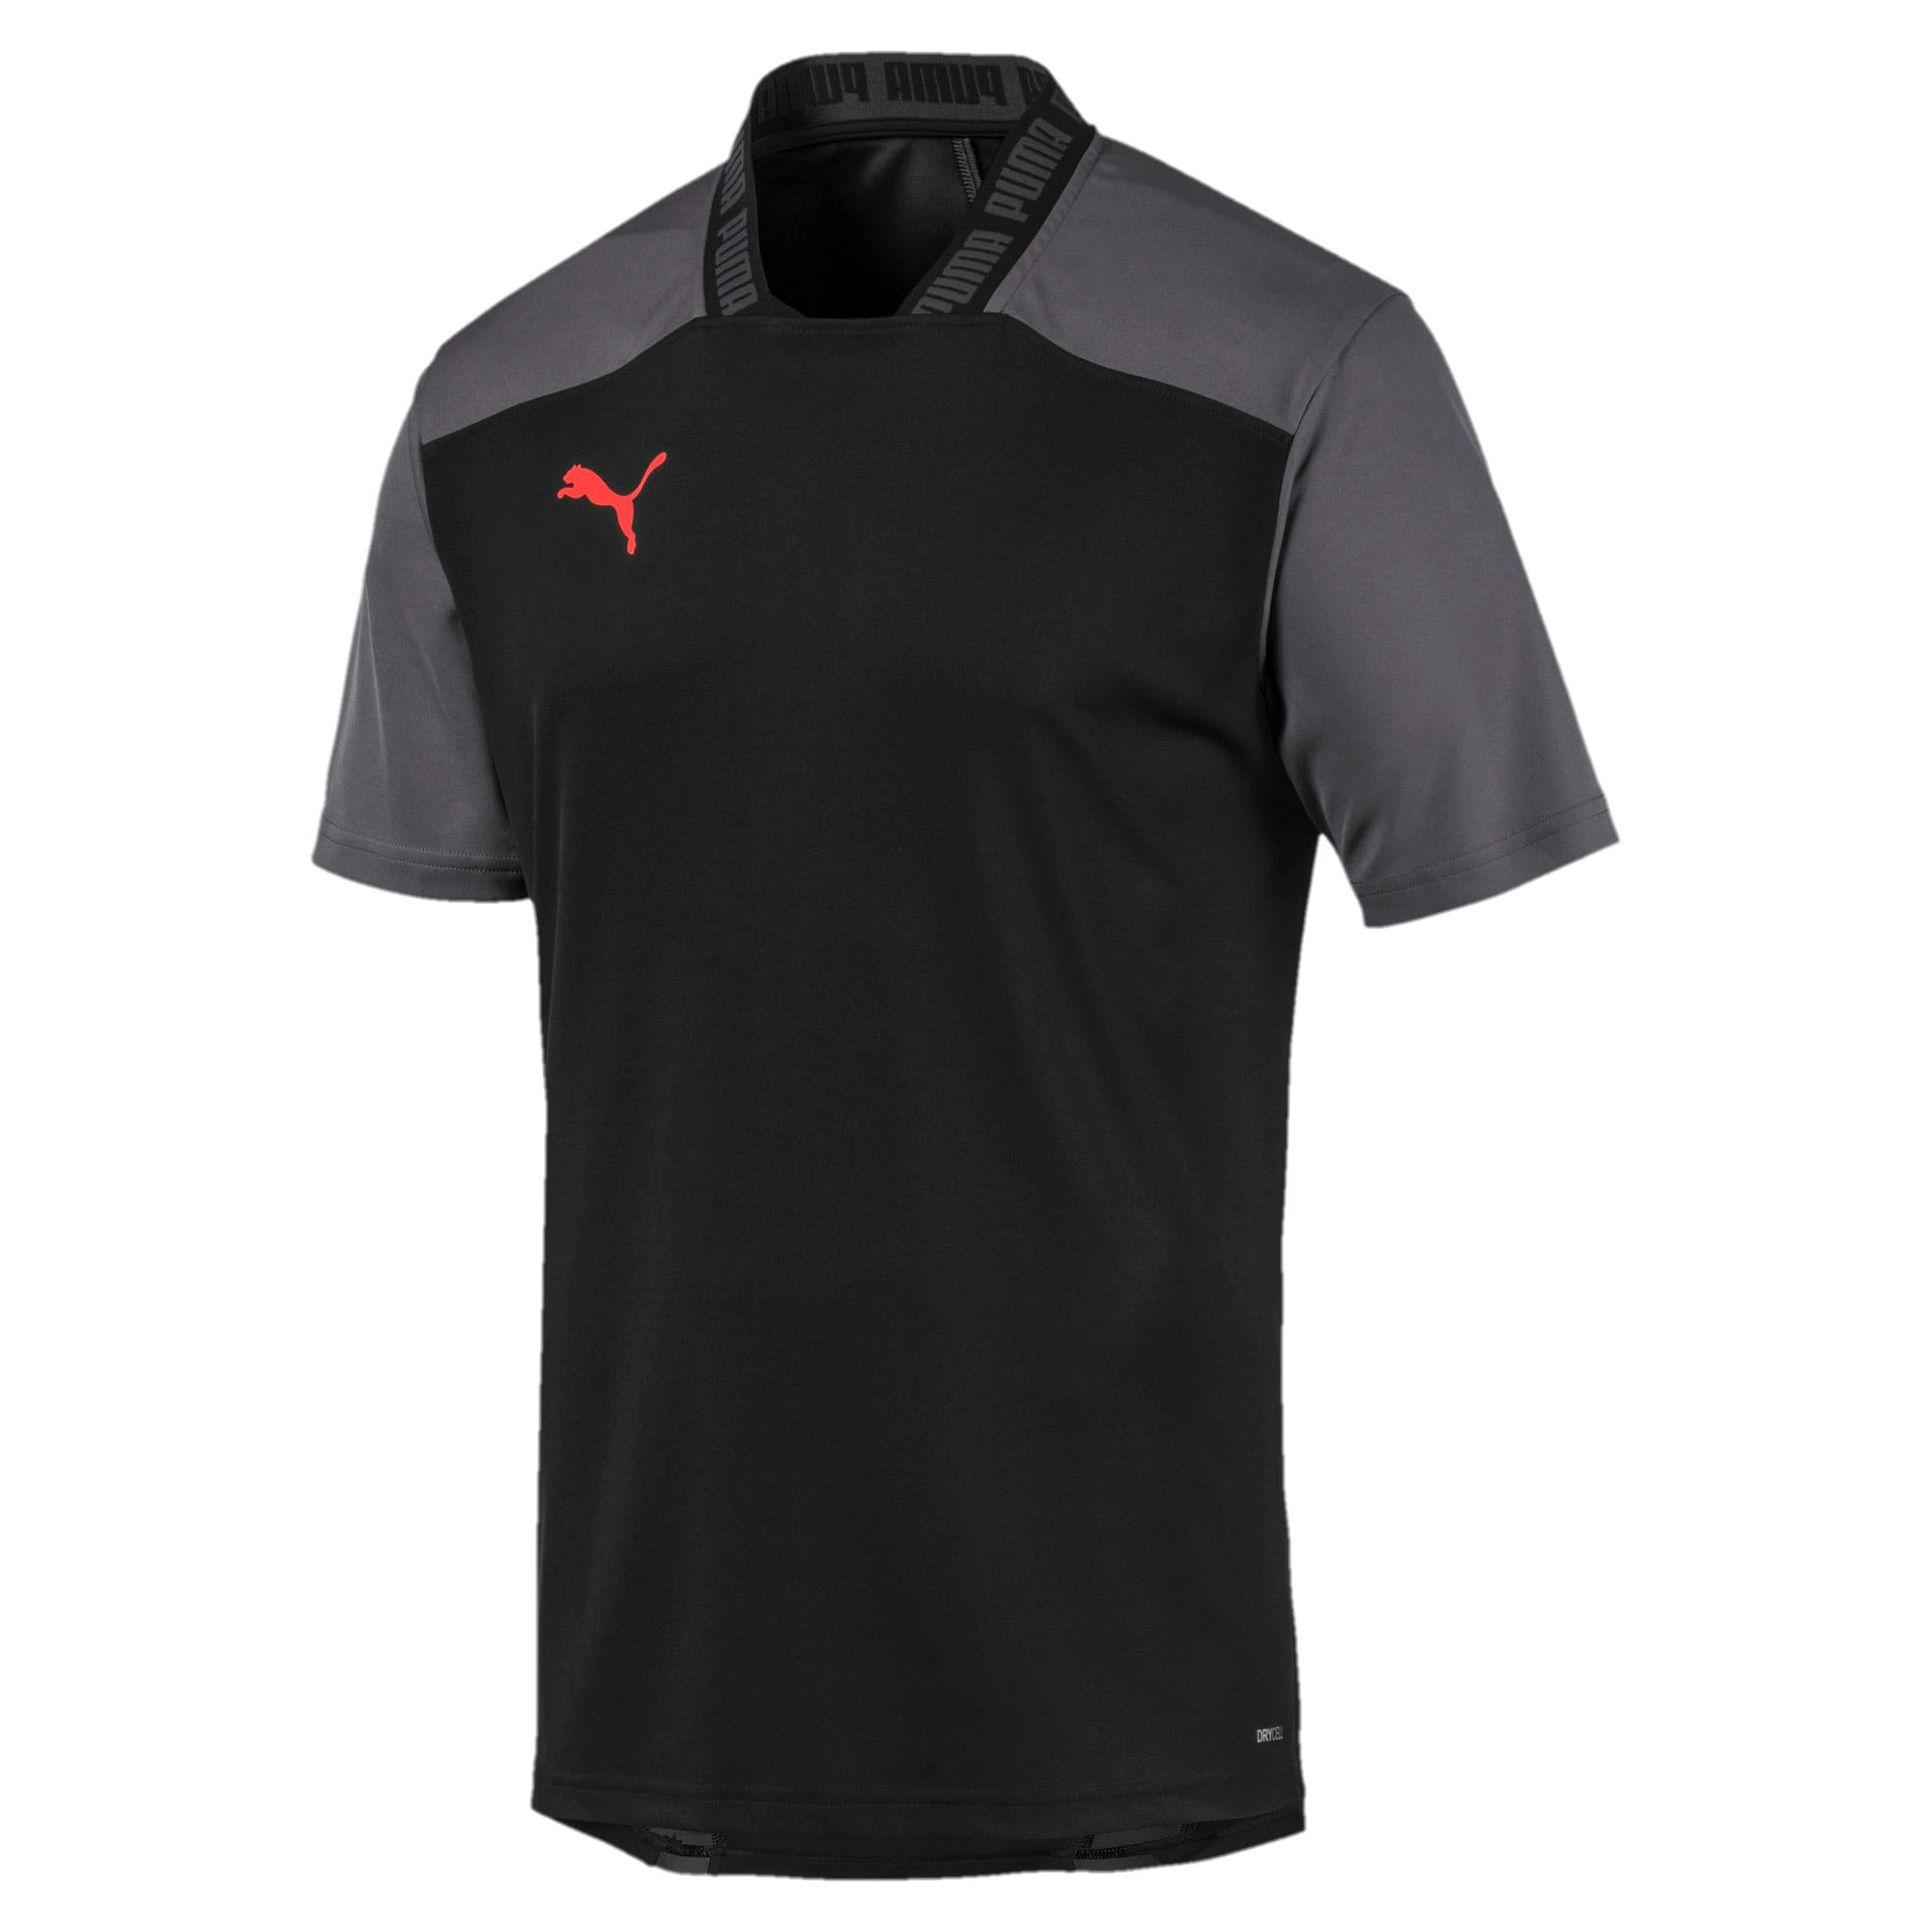 Thumbnail 4 of Pro T-shirt voor heren, Puma Black-Nrgy Red, medium